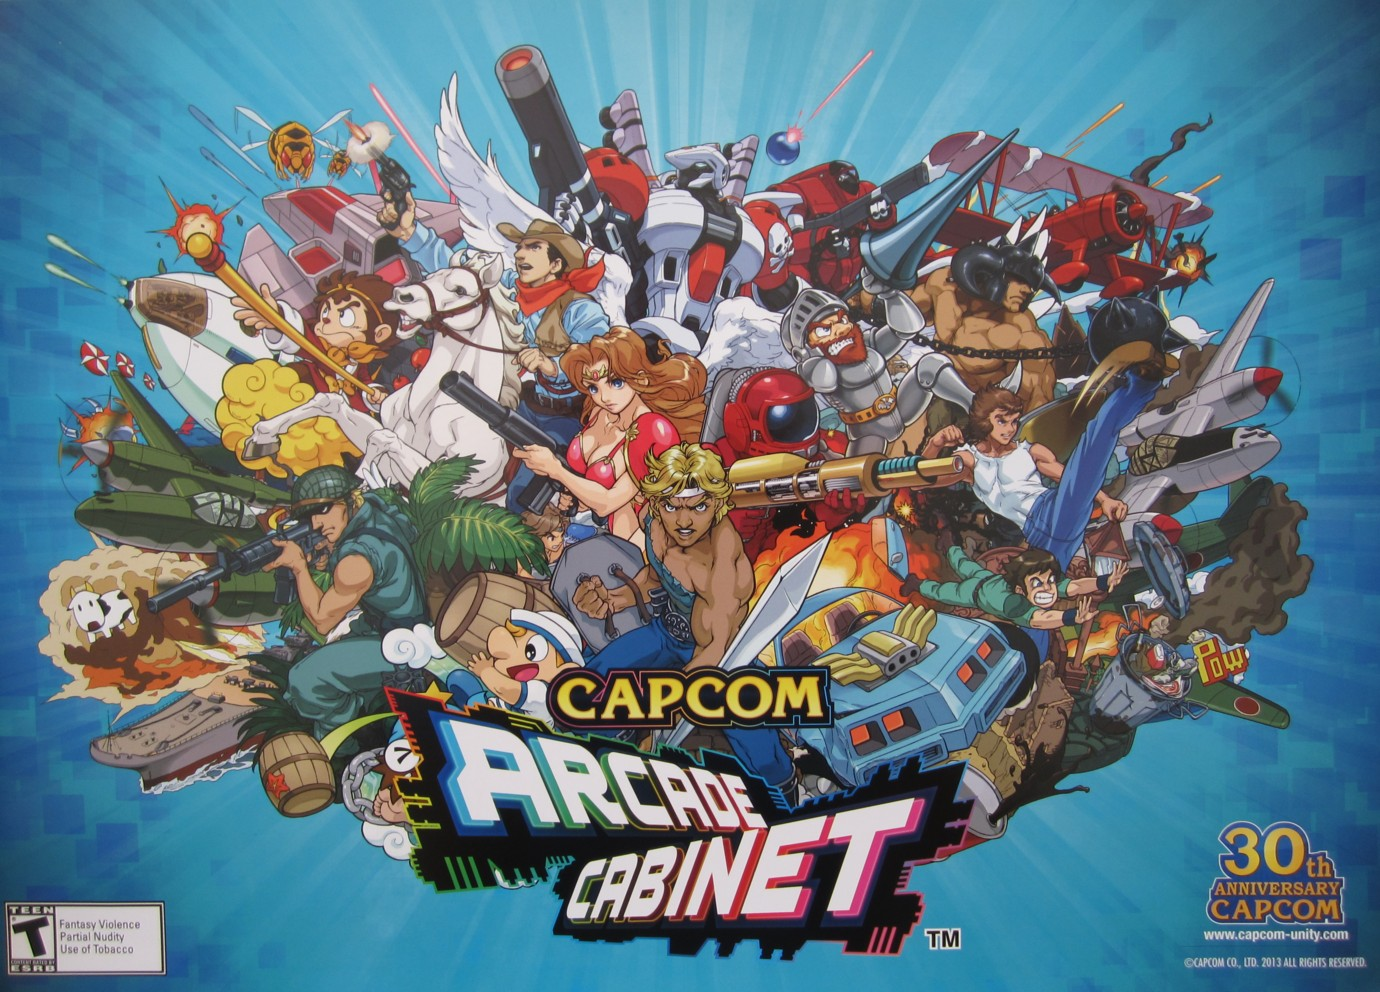 Arcade Cabinet Video Game Capcom Promo 14x20 Poster Mint